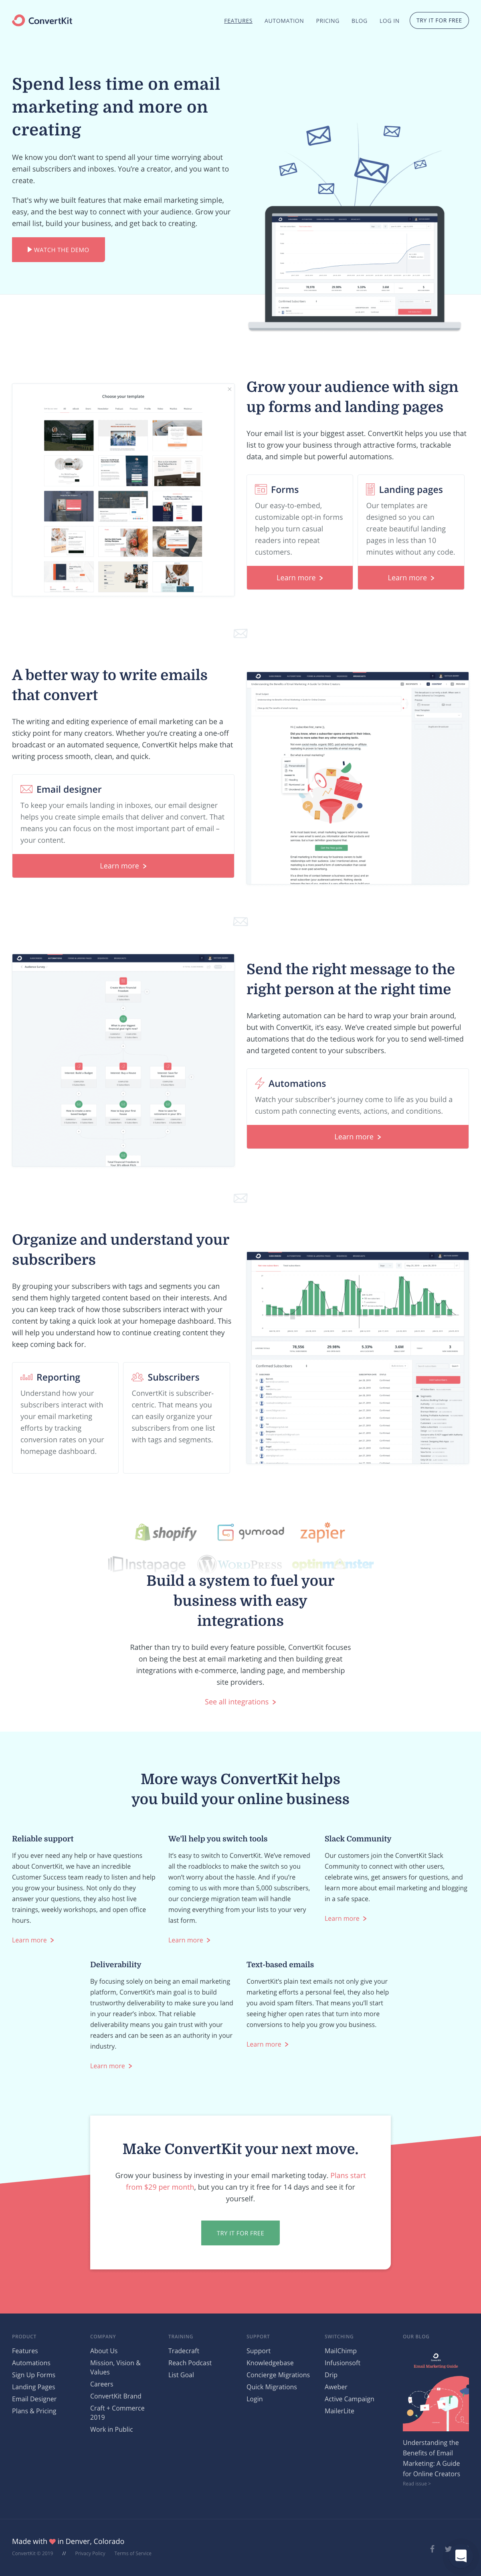 ConvertKit - Features page 1